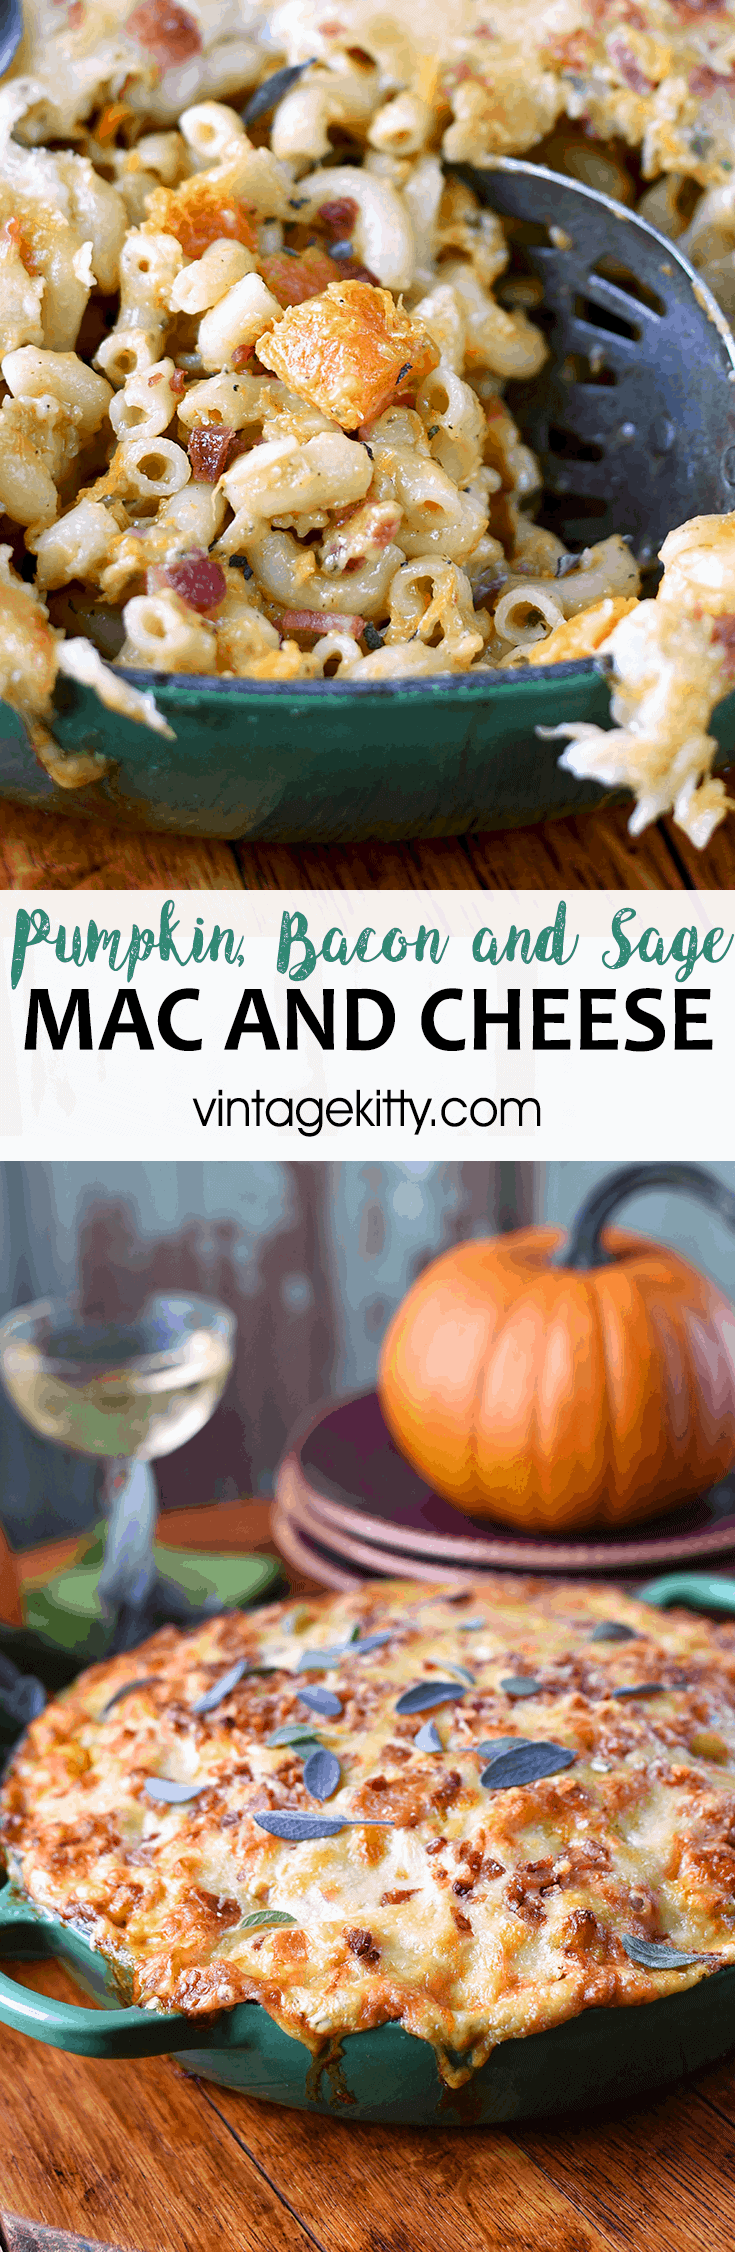 Pumpkin Mac and Cheese Pin - Pumpkin Mac and Cheese with Bacon and Fresh Sage